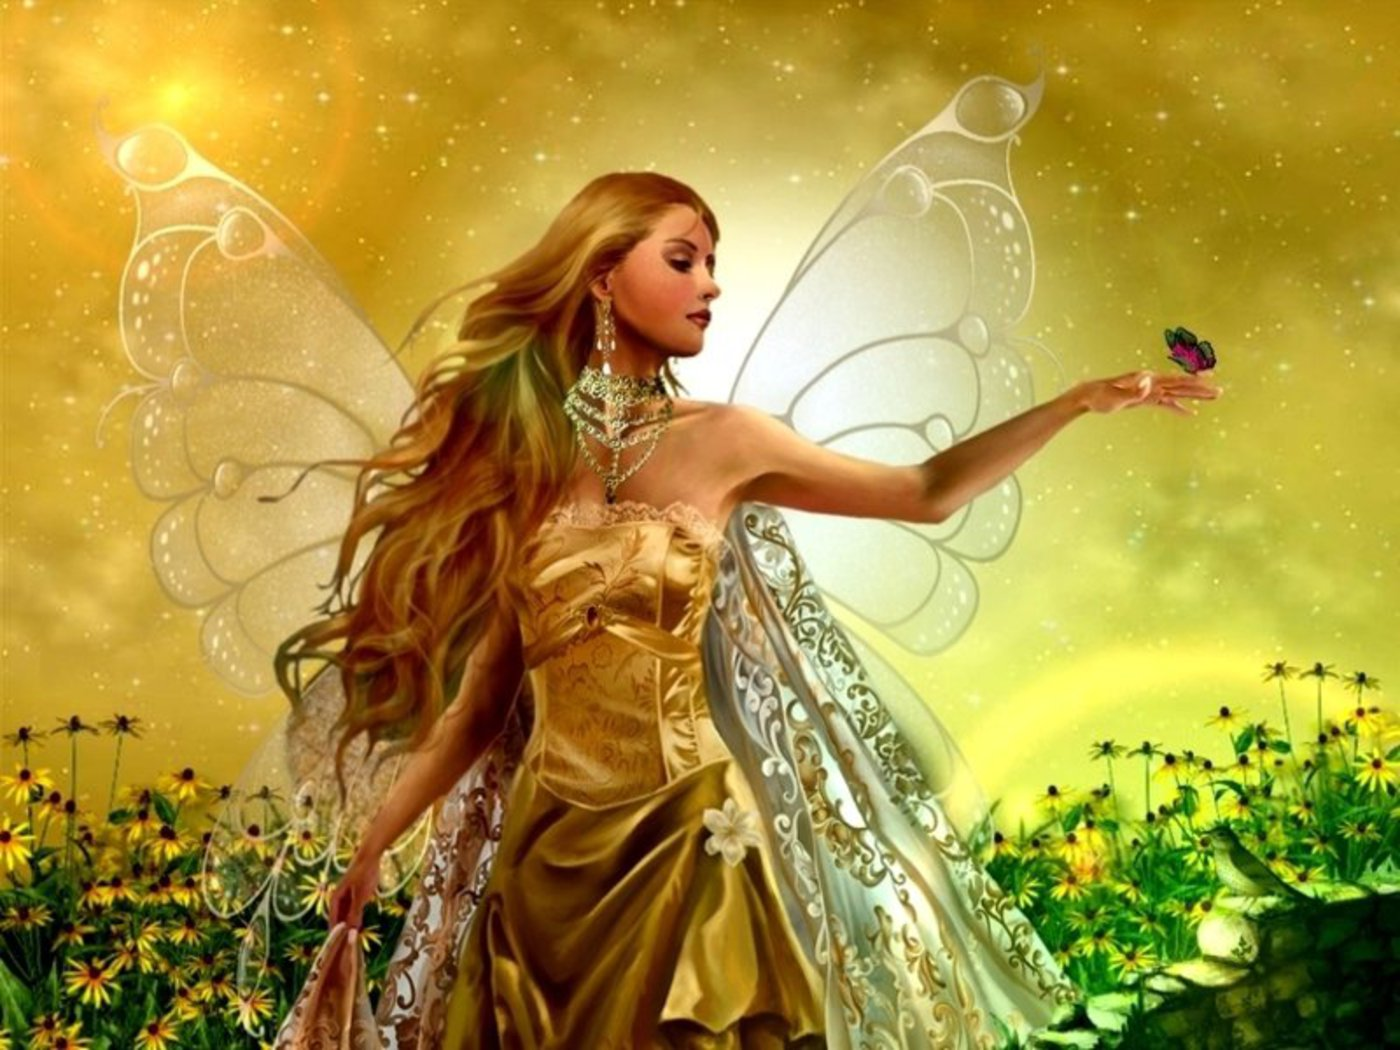 download Fairy And Butterfly Angel Wallpaper 1400x1050 Full 1400x1050